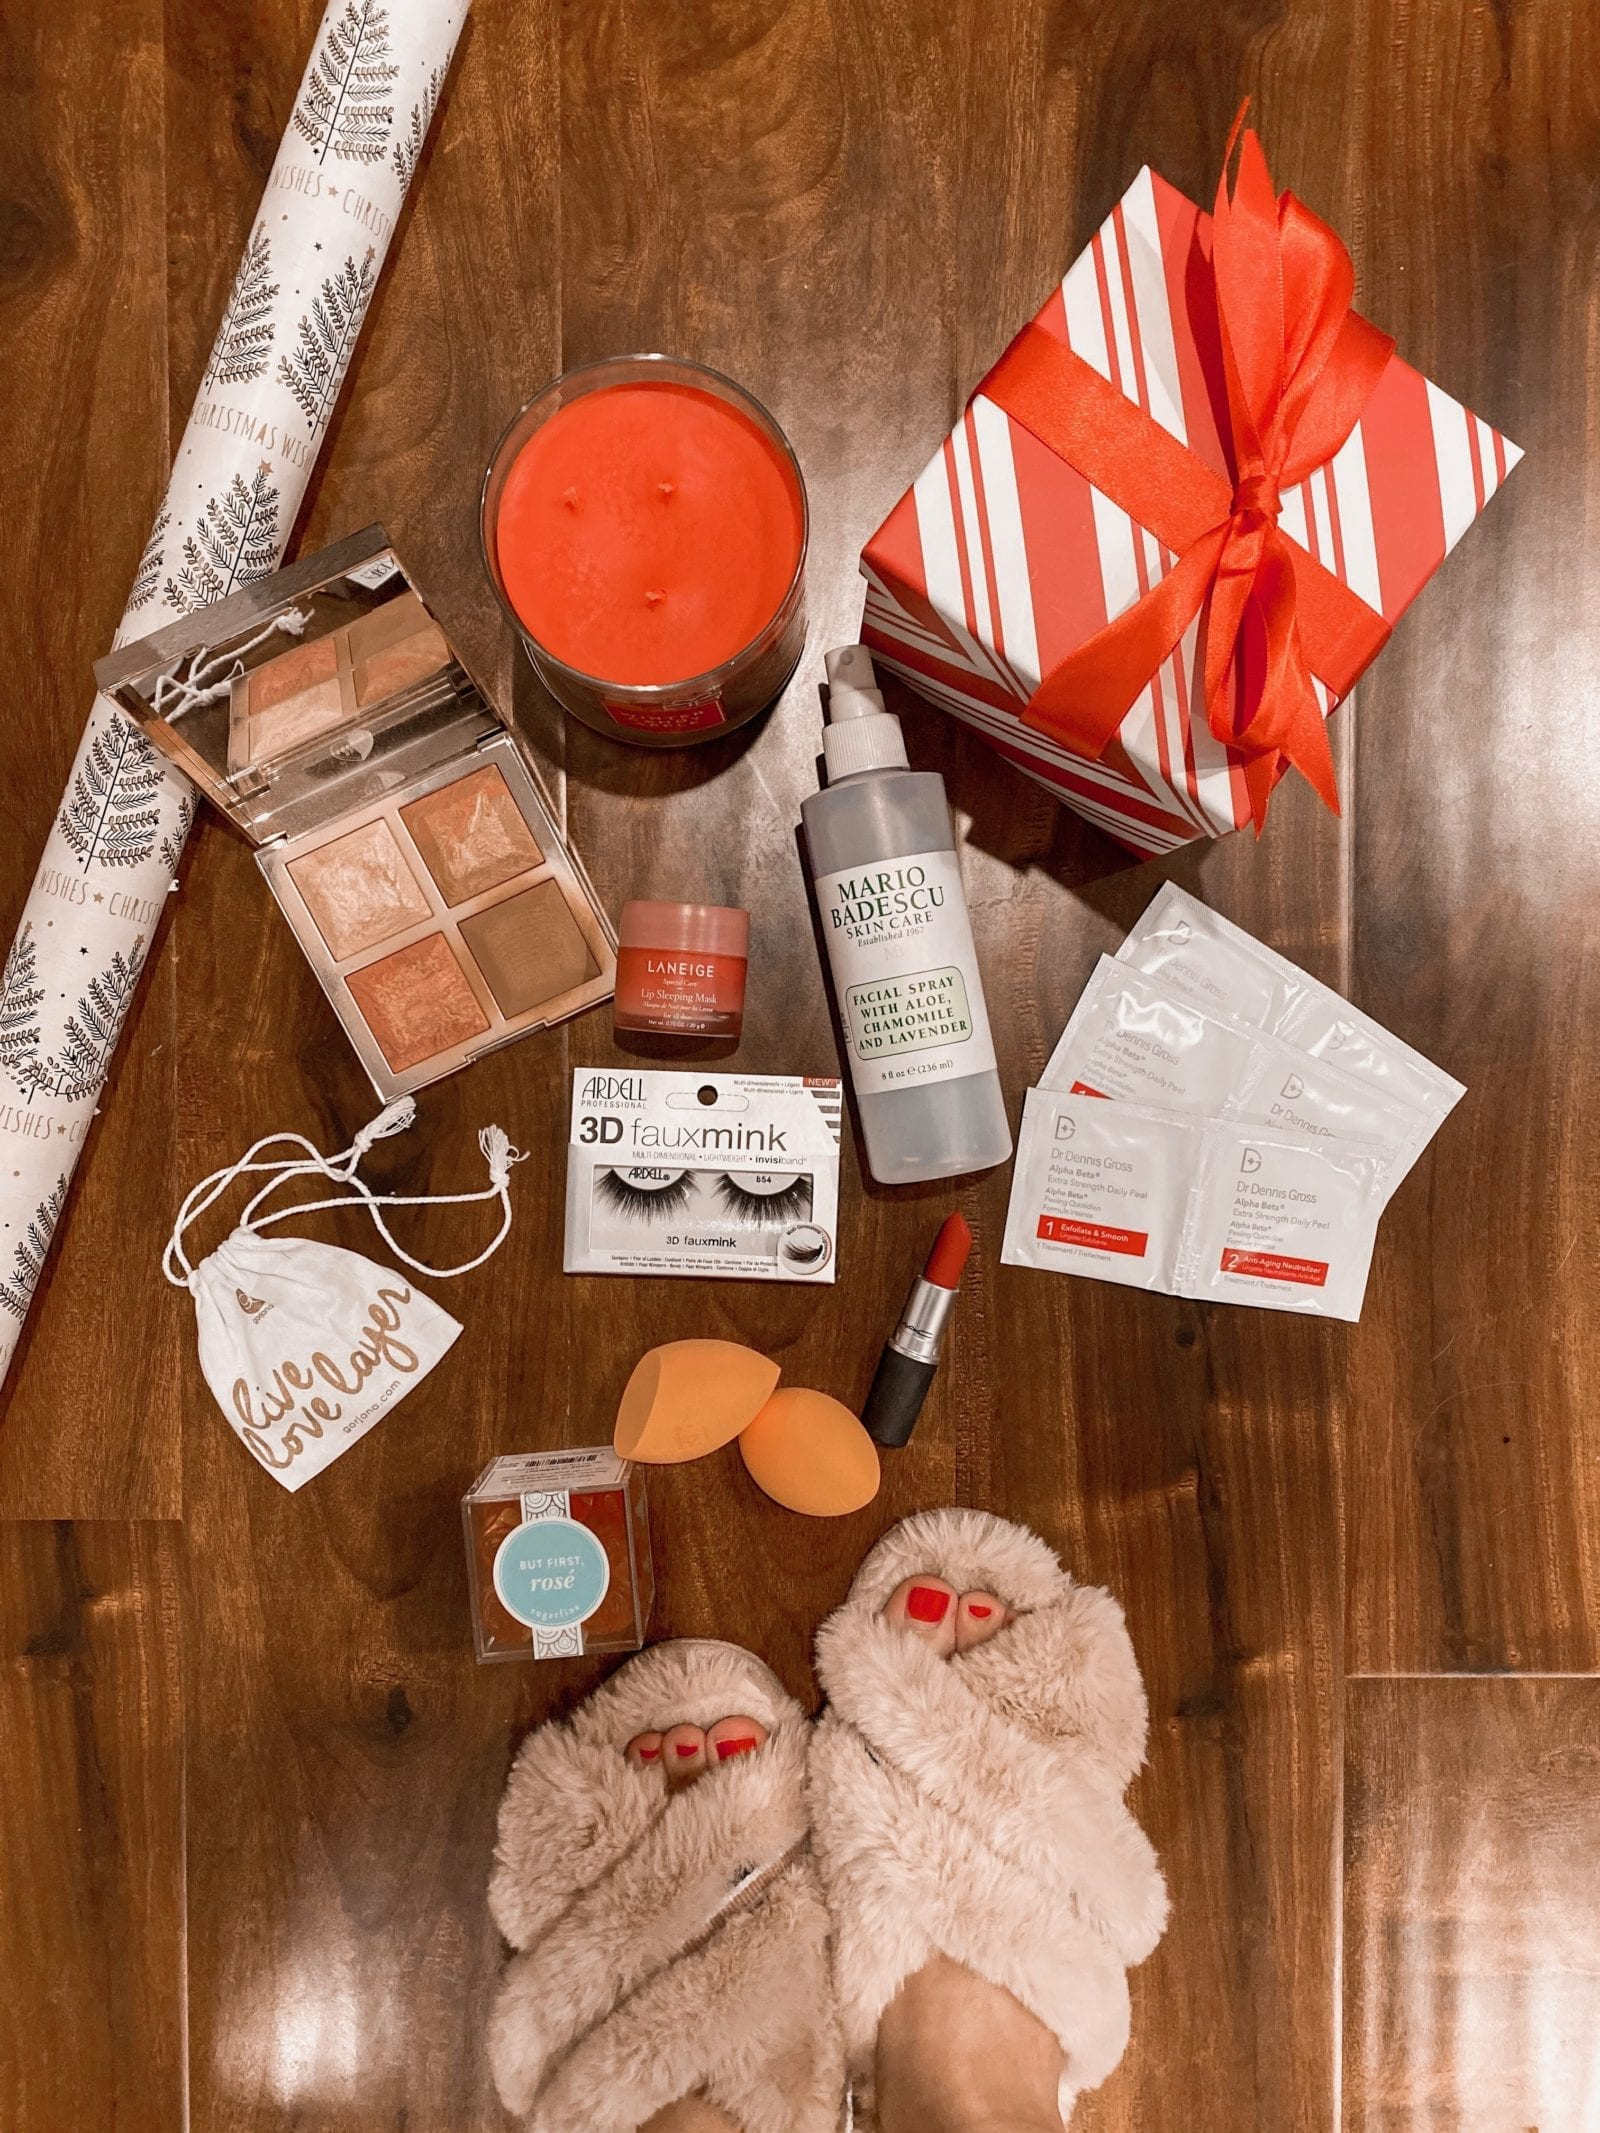 In this photo, Haley is sharing some of her favorite items that make great gifts for under $25. Next to the holiday wrapping paper, is sugarfina gummy bears, a beautiful contouring palette, a large, lavender setting spray, several bright orange beauty sponges. false lashes and our favorite peel pads from Dr. Dennis Gross.